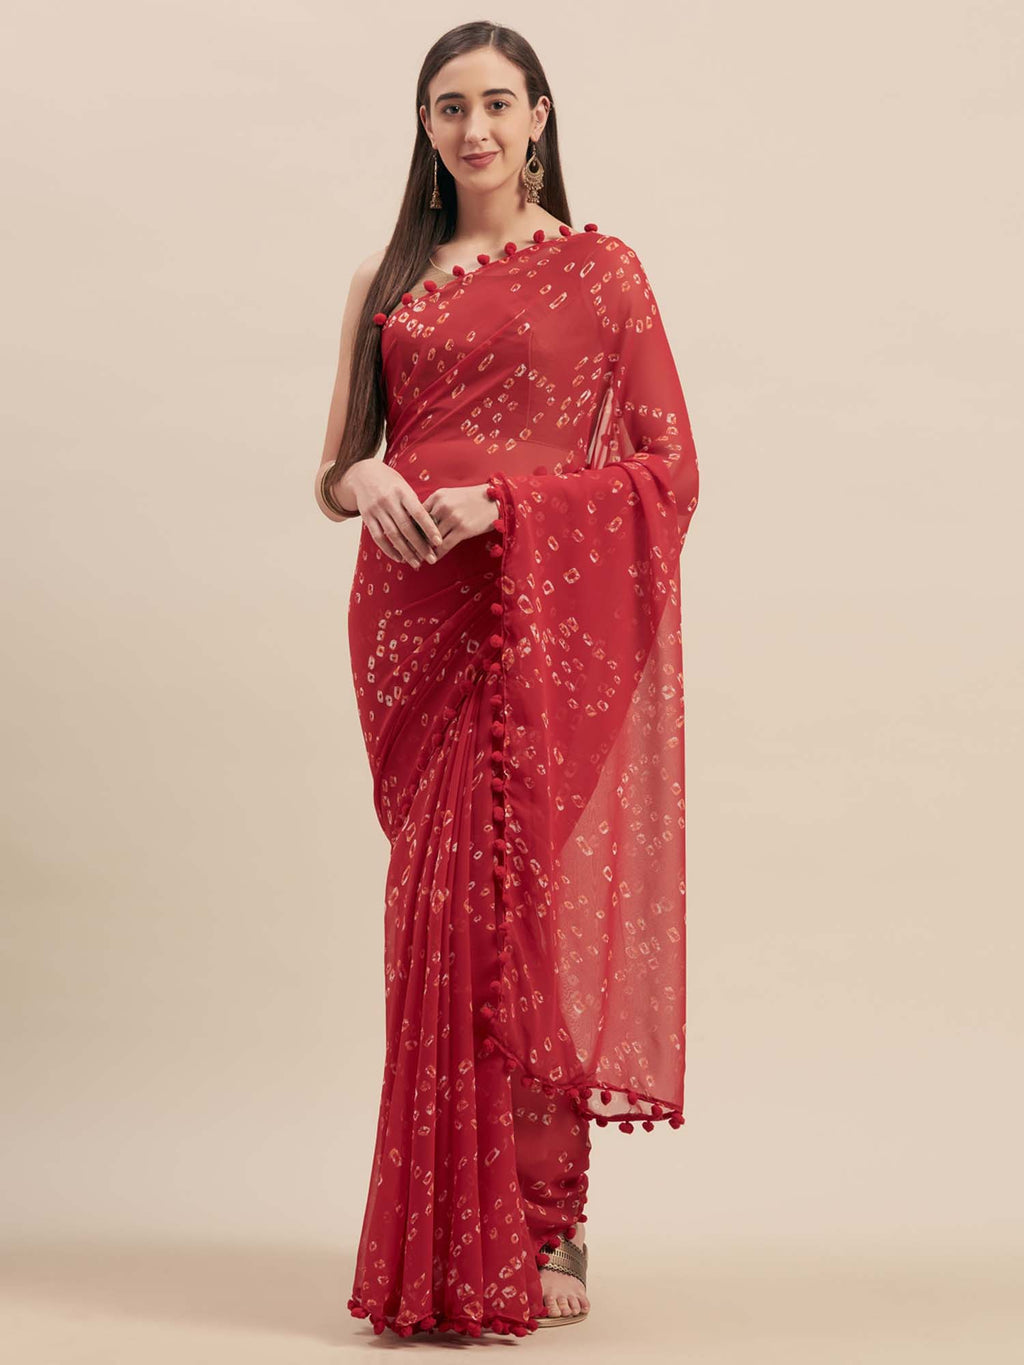 Red Poly Georgette Bandhani Design Saree With Pom Pom Lace - Riviera Closet